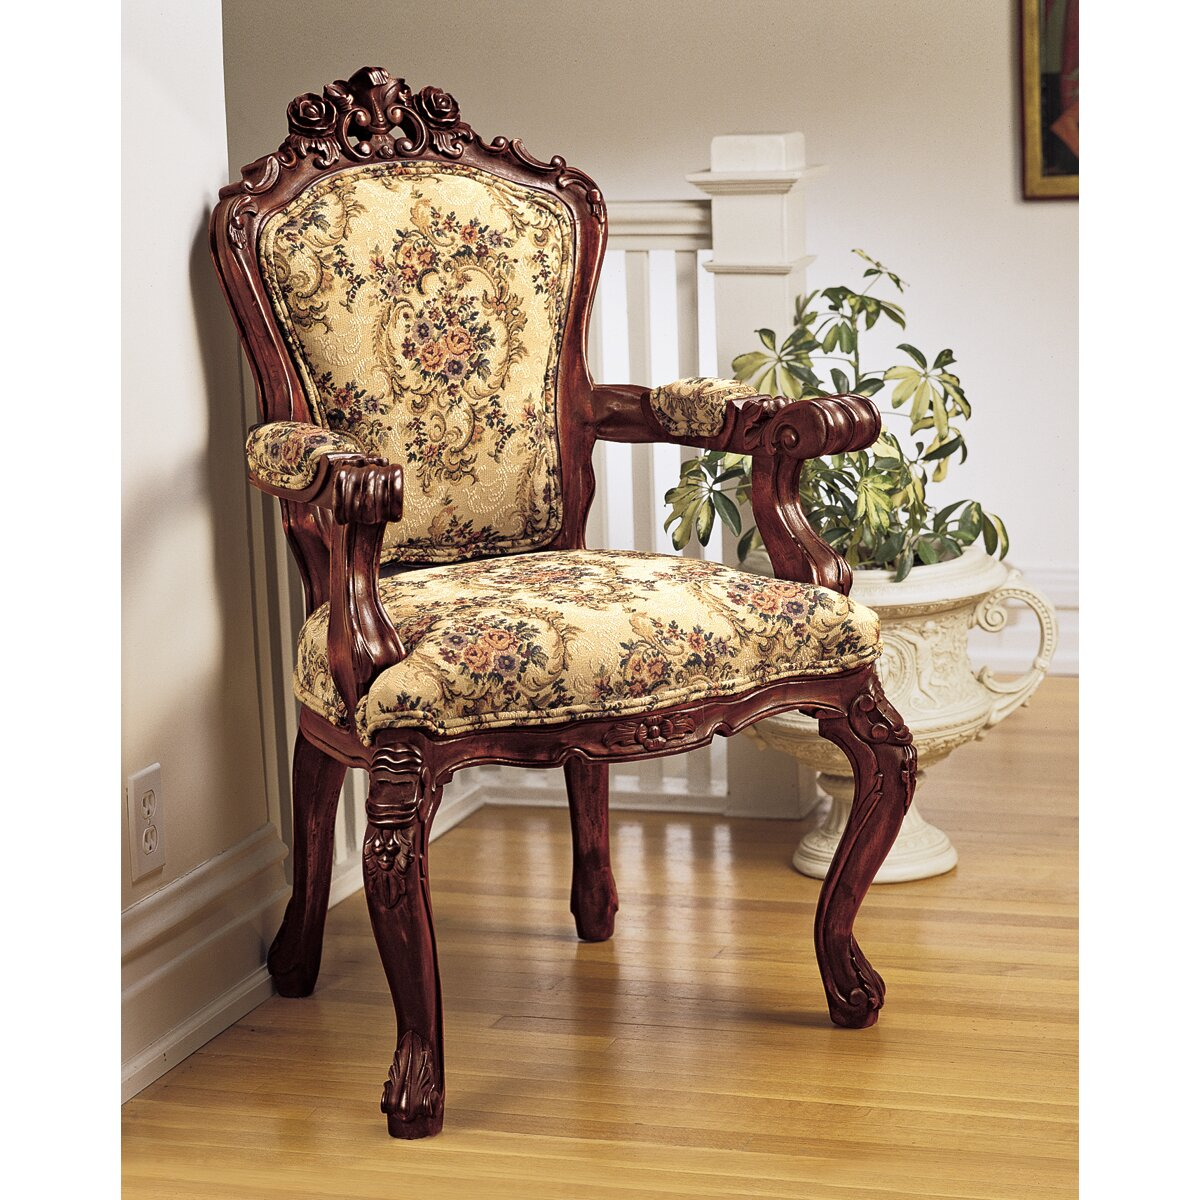 Design Toscano Carved Rocaille Fabric Arm Chair amp Reviews  : Design Toscano Carved Rocaille Fabric Arm Chair AF307 from www.wayfair.com size 1200 x 1200 jpeg 452kB